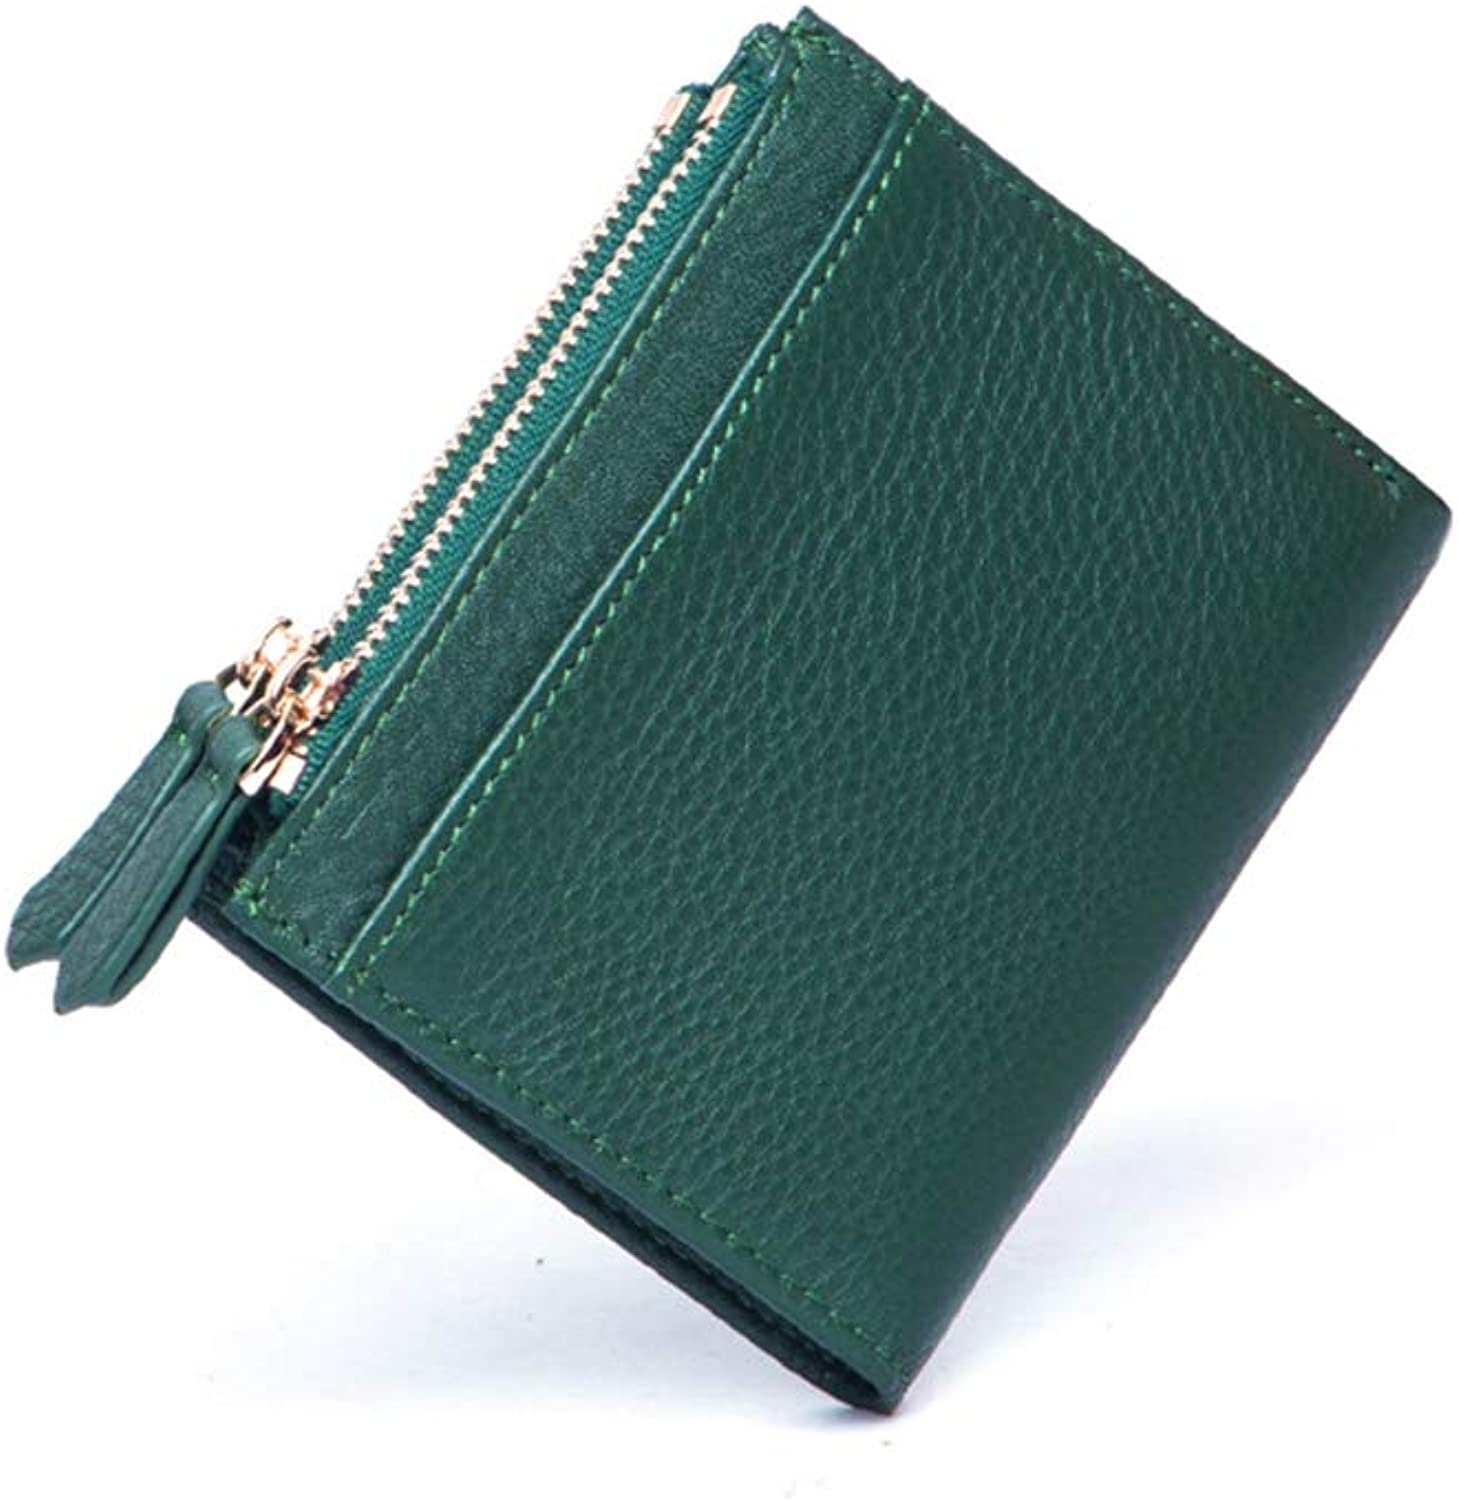 HGXC Small Wallet Women's Short Mini Simple Folding Small Wallet MultiFunction Coin Purse